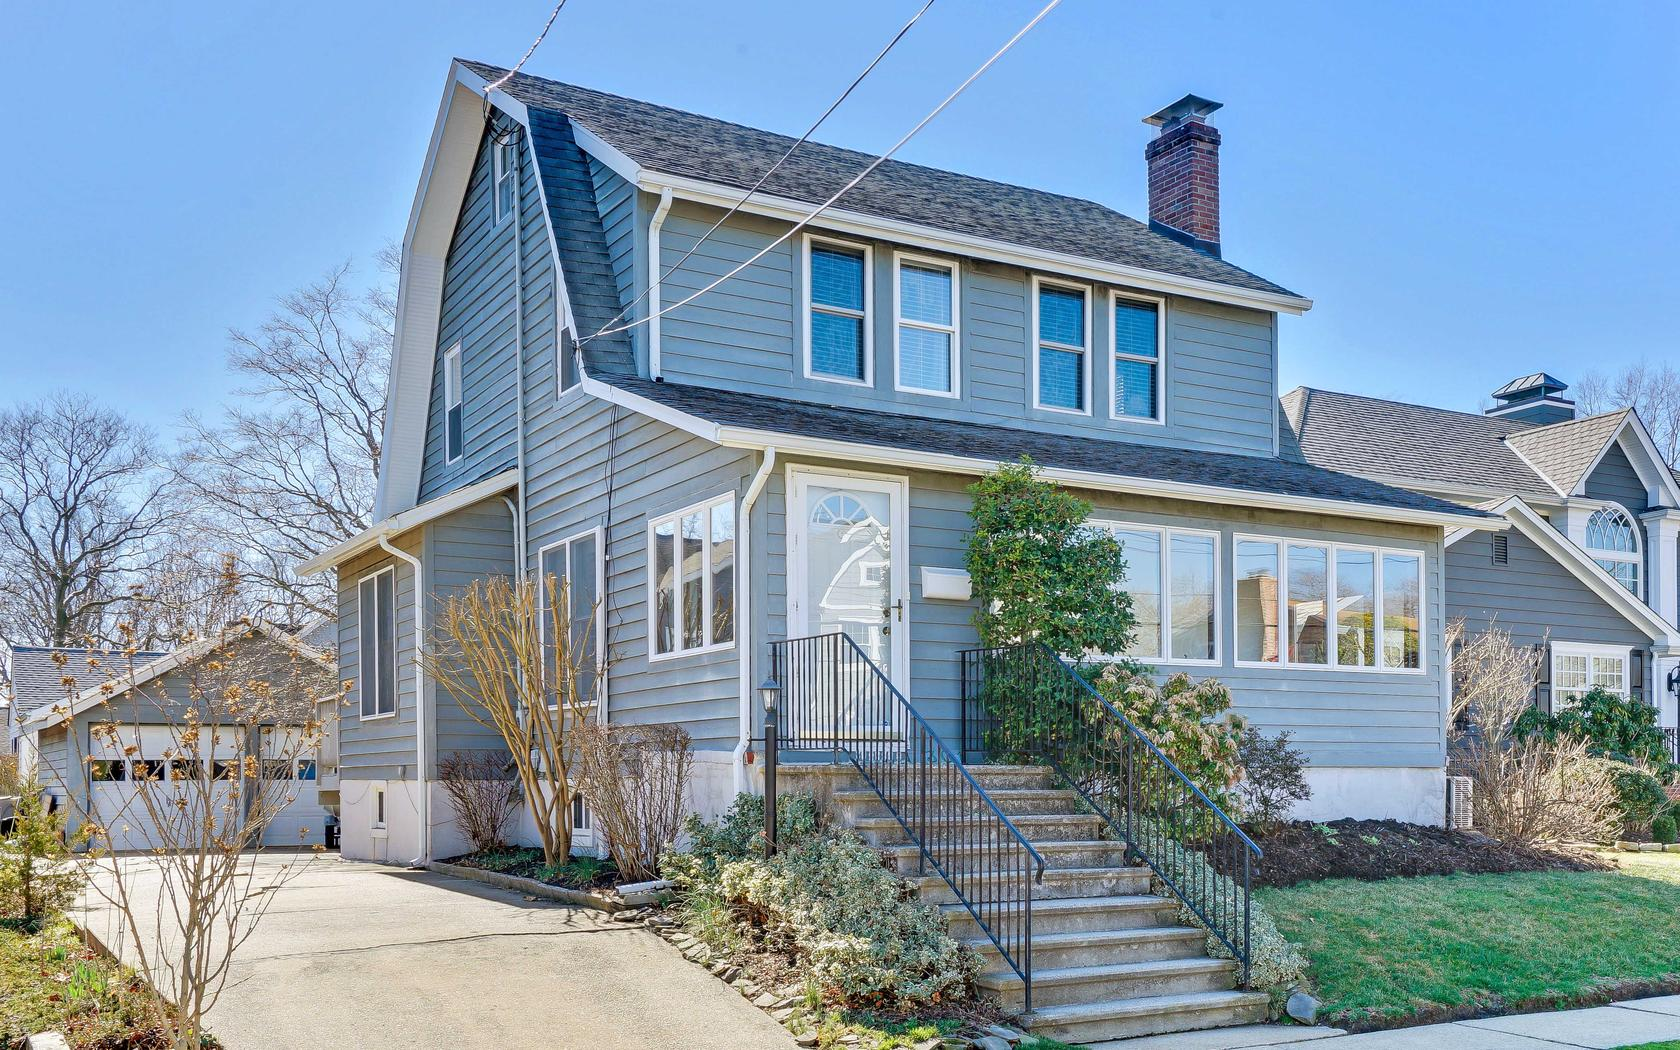 Single Family Home for Sale at Stunning Manasquan Colonial 301 Euclid Avenue Manasquan, New Jersey 08736 United States